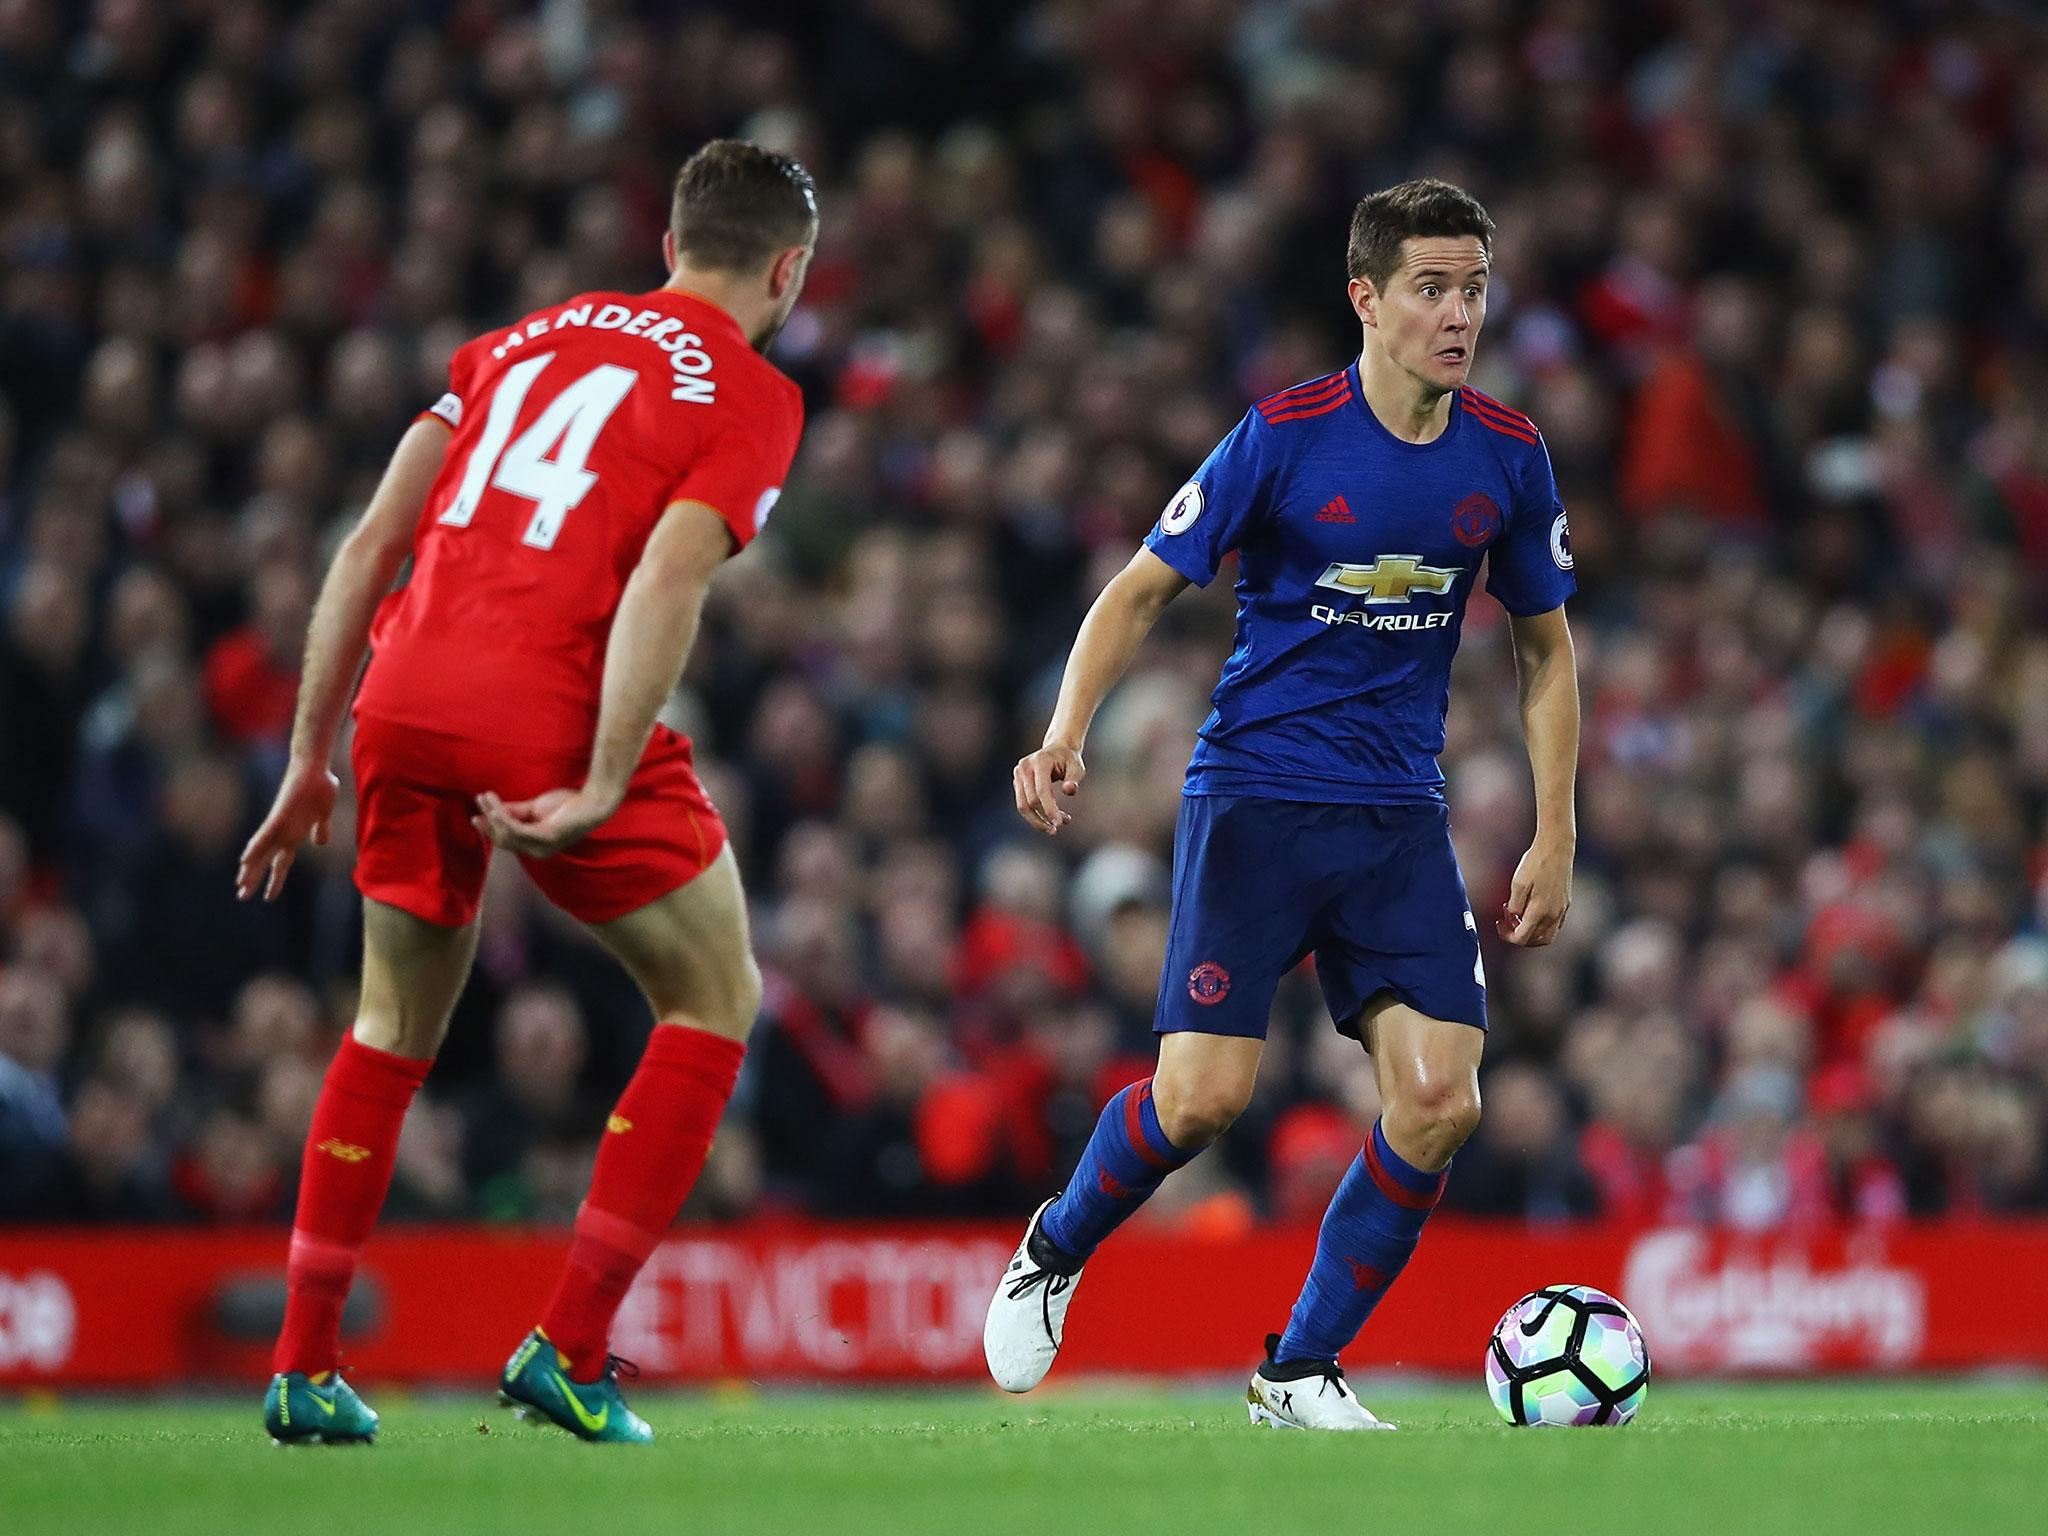 https://static.independent.co.uk/s3fs-public/thumbnails/image/2016/10/17/21/ander-herrera.jpg